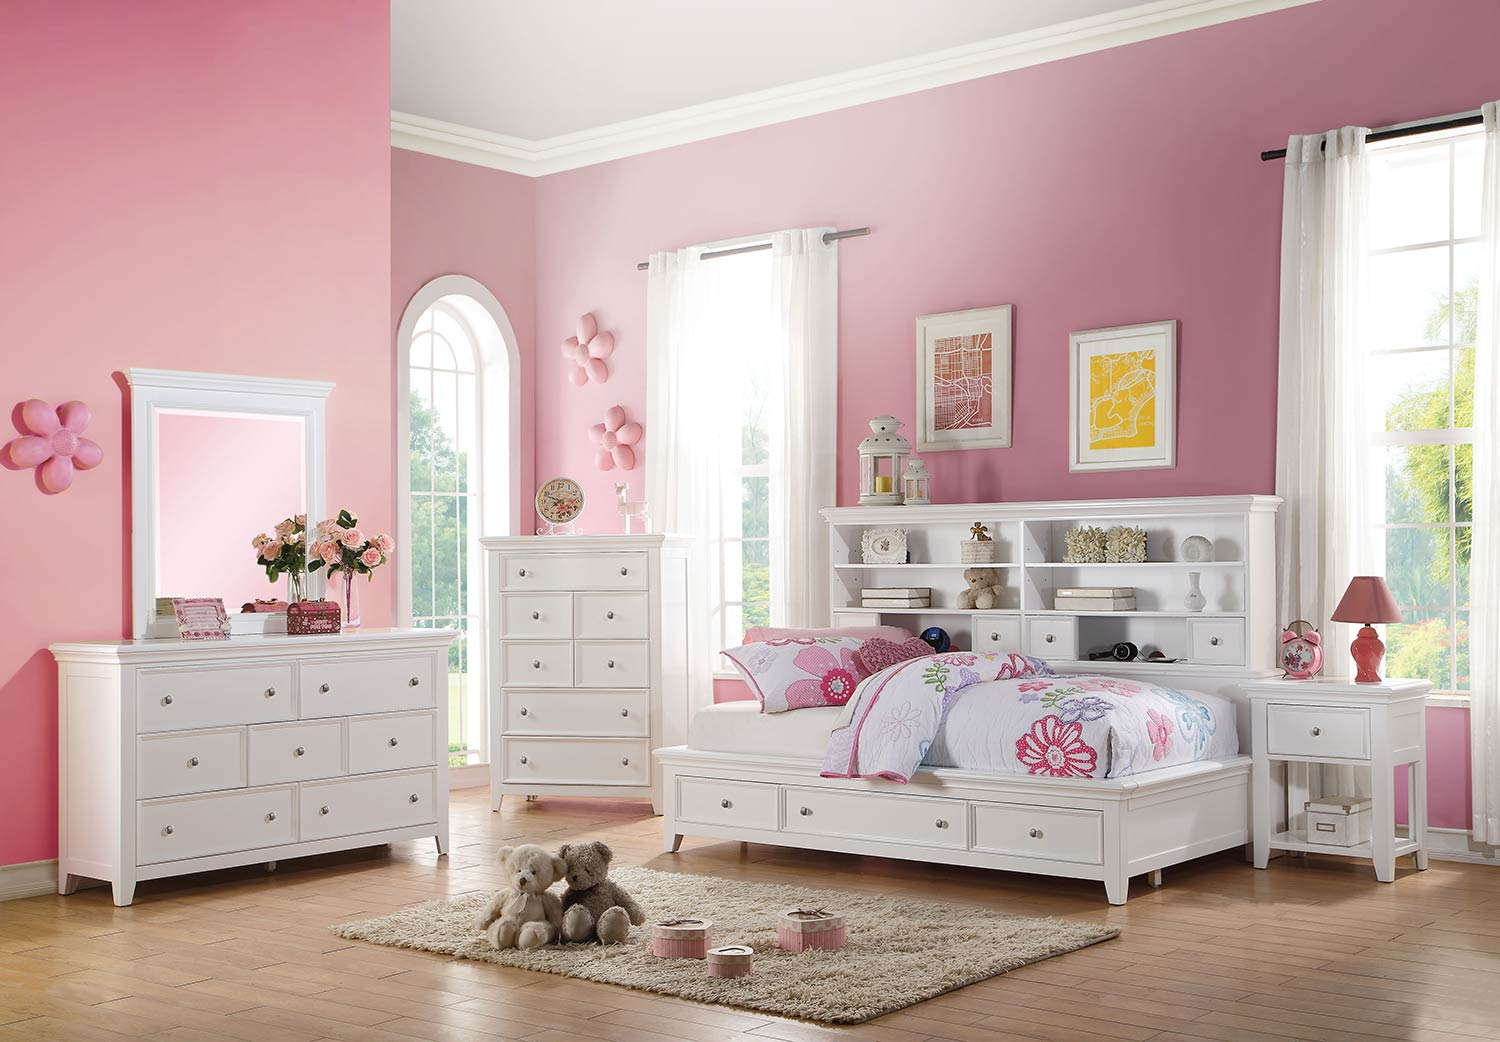 Acme Lacey Daybed Room Set with Storage - White